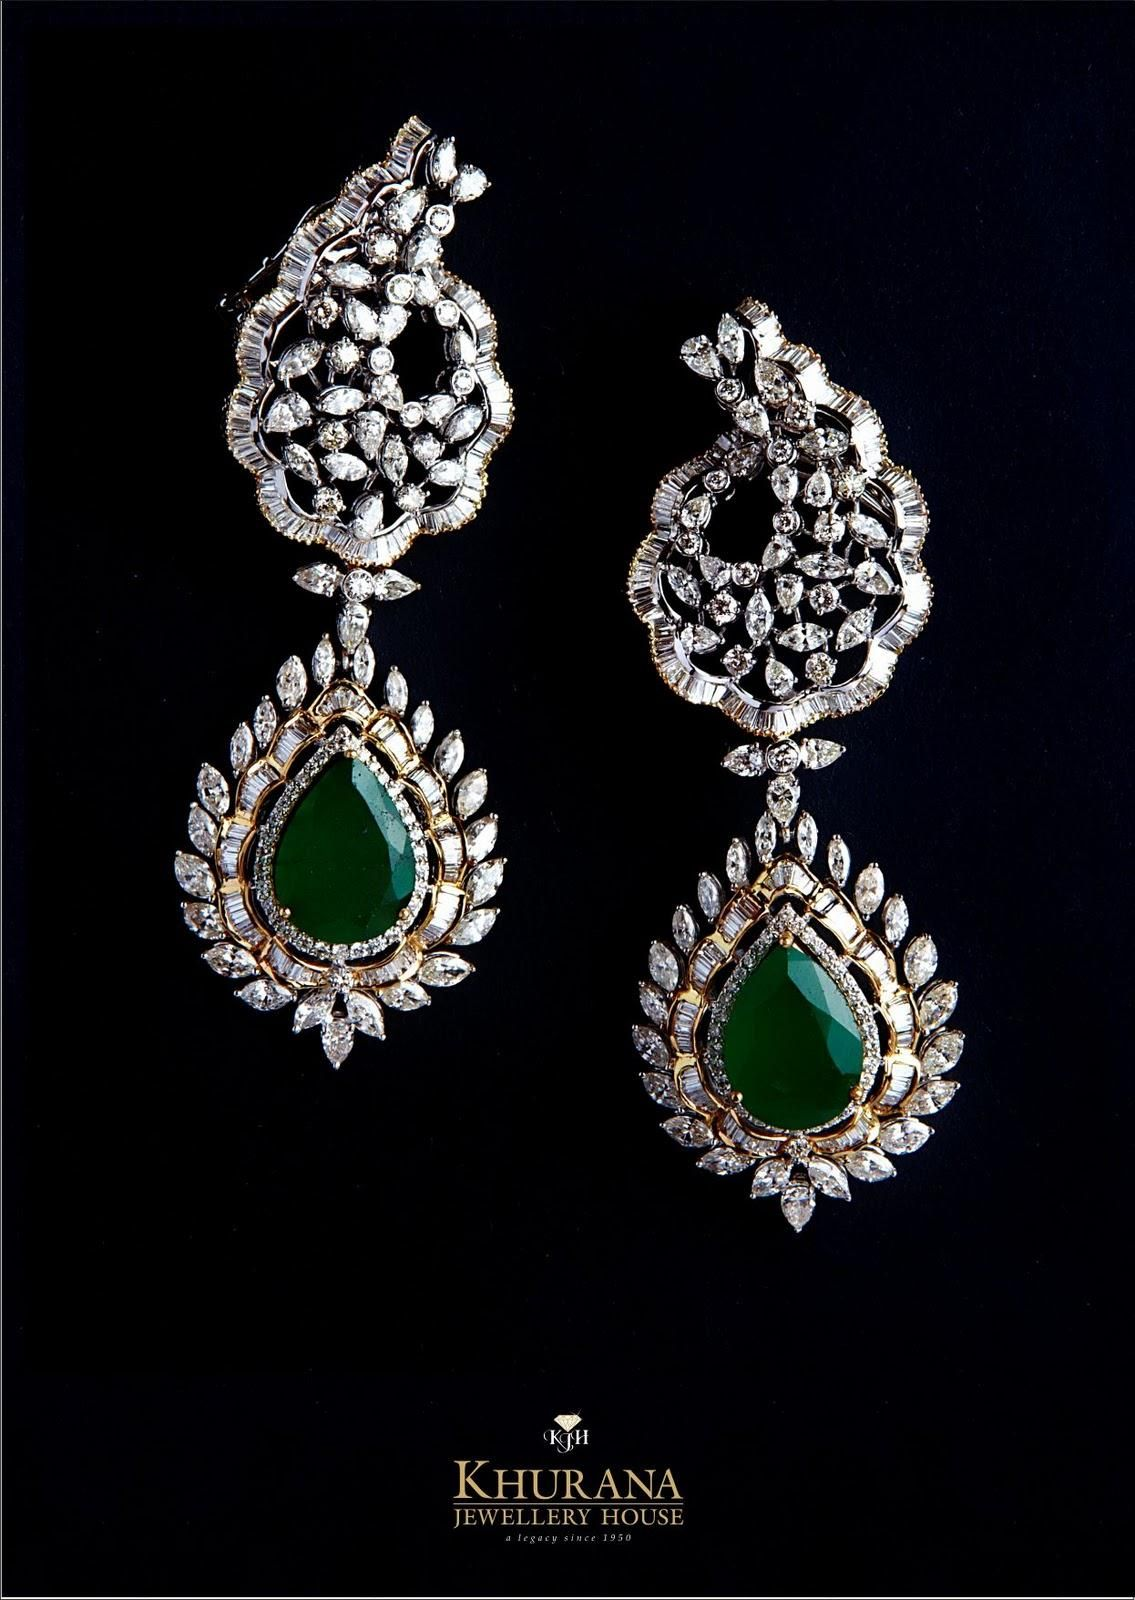 Http://www.southjewellery.com/wp-content/uploads/2015/02